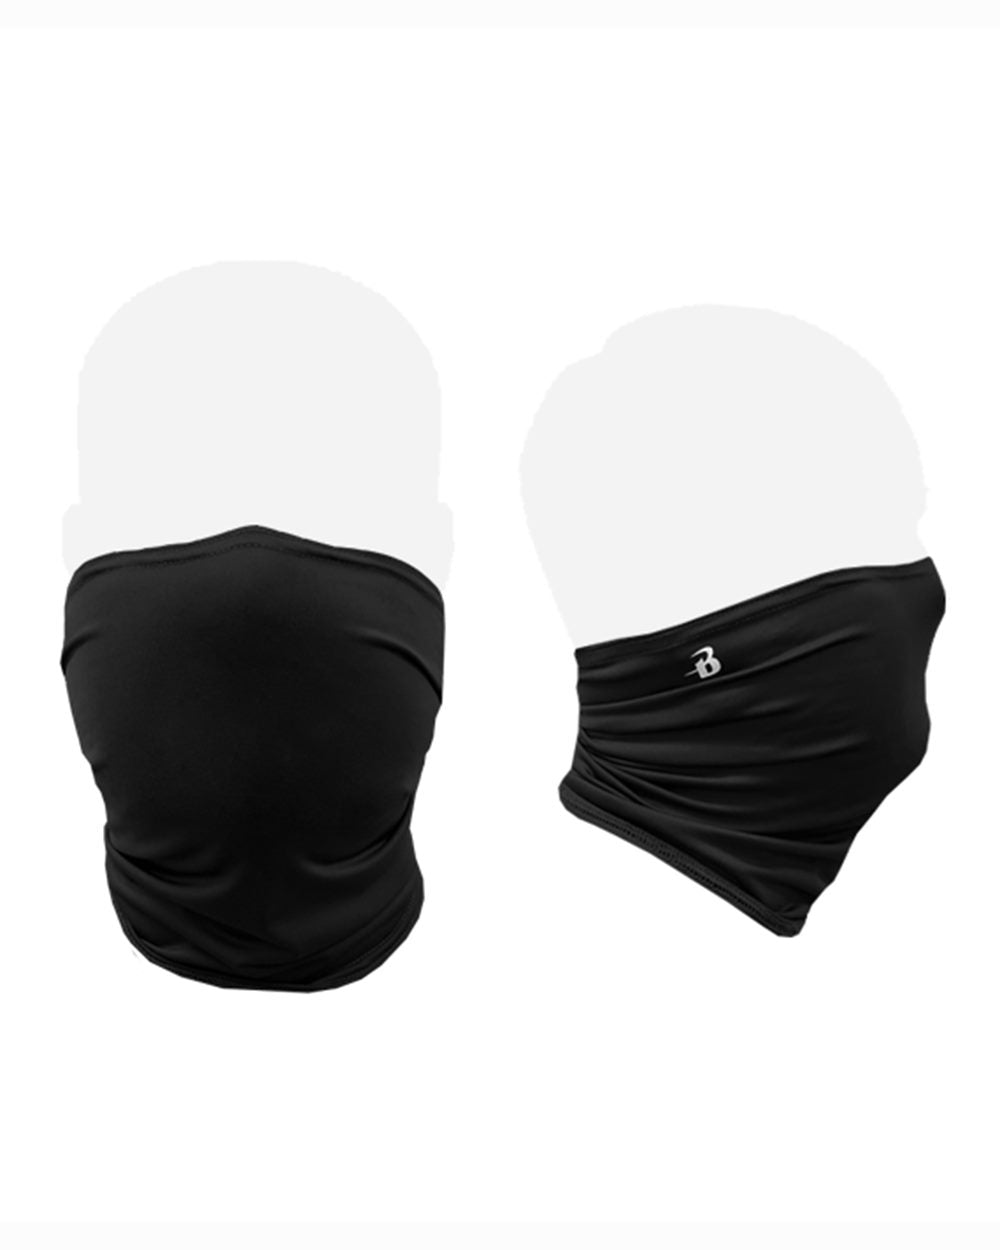 Performance Activity Mask by Badger